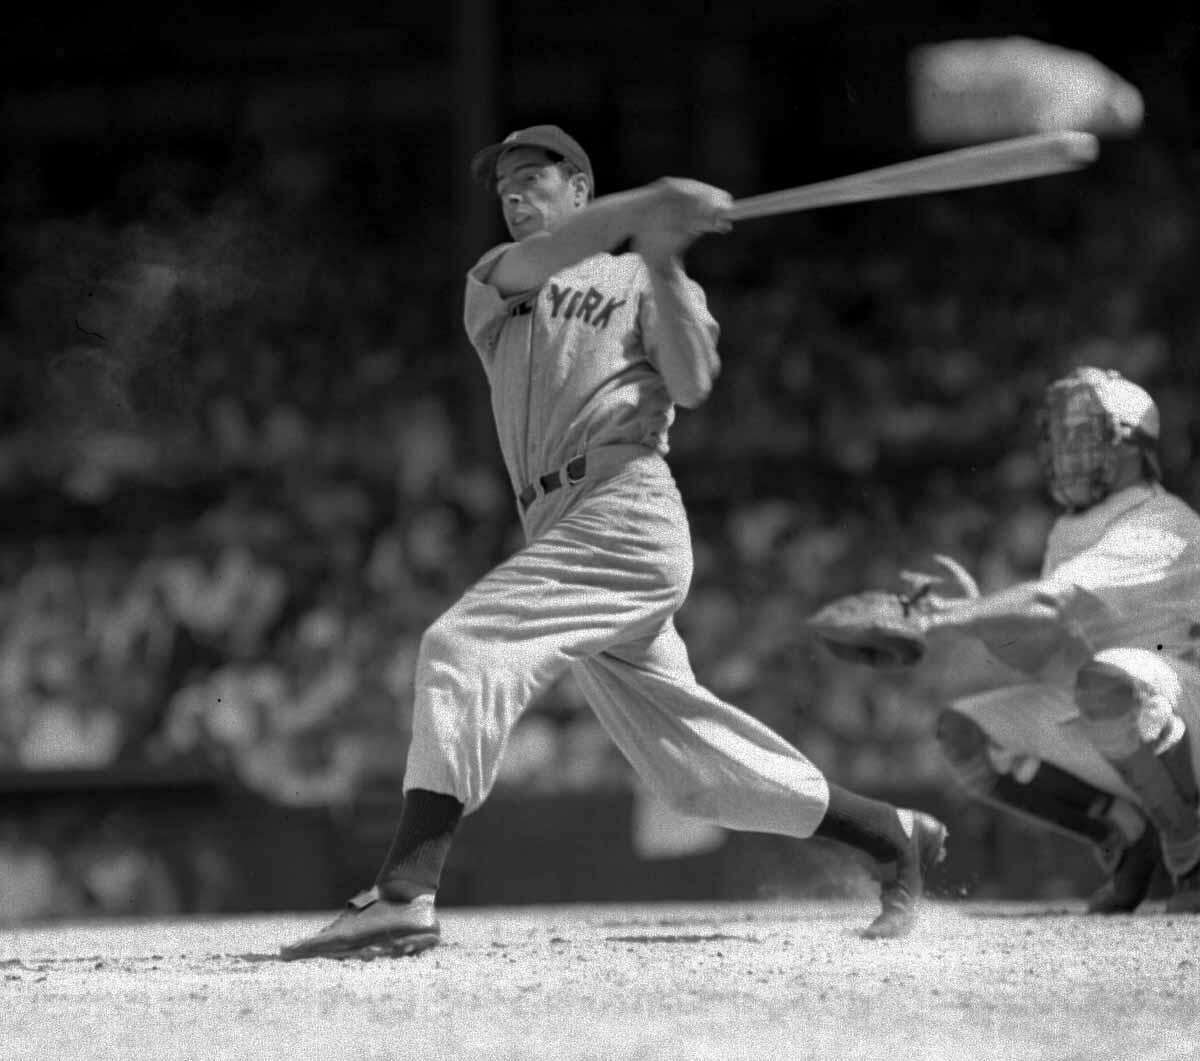 Joe DiMaggio lines a single to left field in the seventh inning of the second game of a doubleheader at Washington June 29, 1941, to set a record for hitting safely in 42 consecutive games. In the first game, DiMaggio tied George Sisler's record of 41 games, set in 1922. The catcher is Jake Early of the Washington Senators. Yankees won both games, 9-4, 7-5. (AP photo)